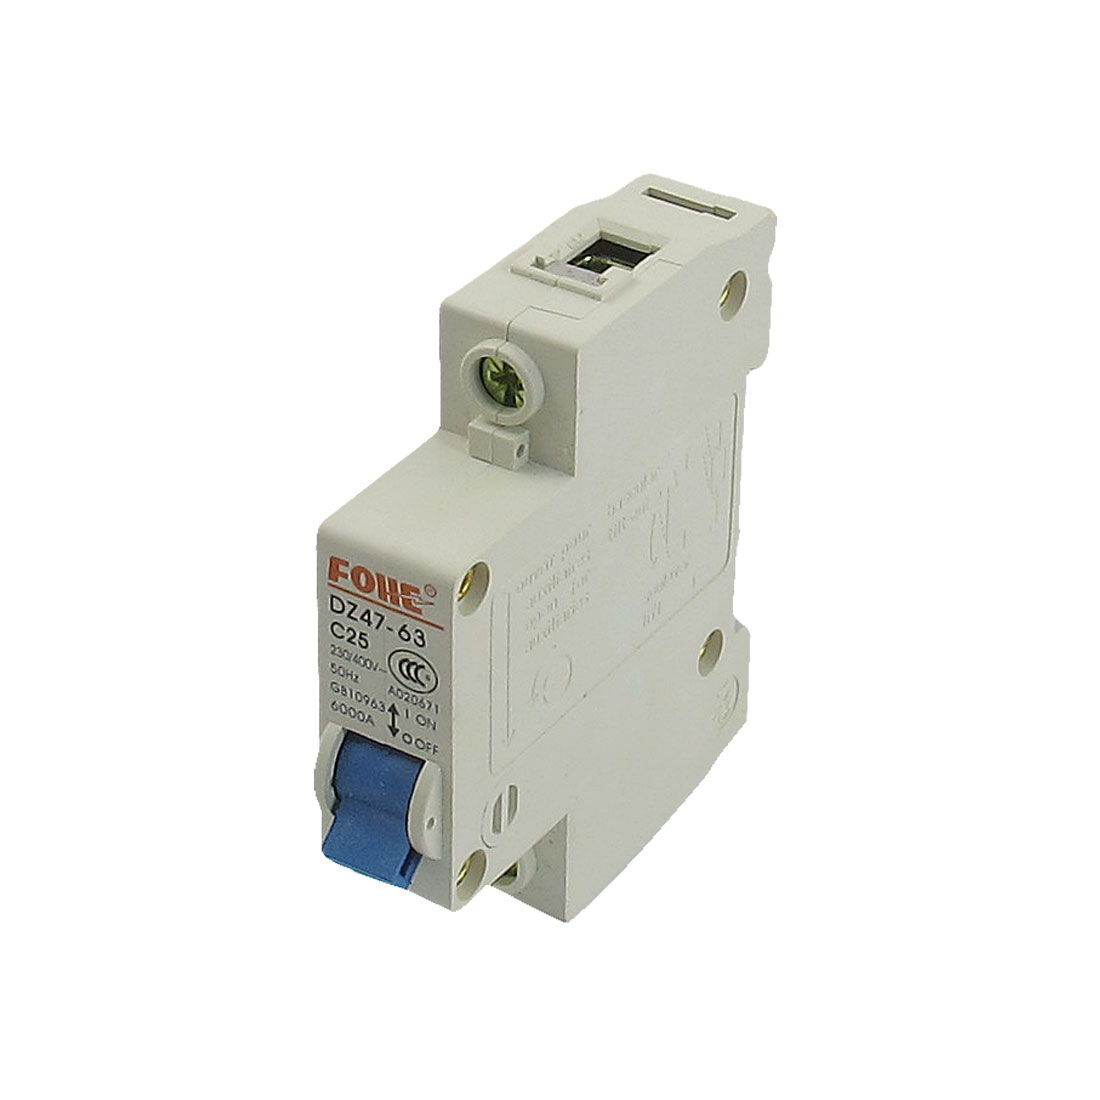 AC 230V/400V 25A Single Pole Overload Protection MCB Mini Circuit Breaker